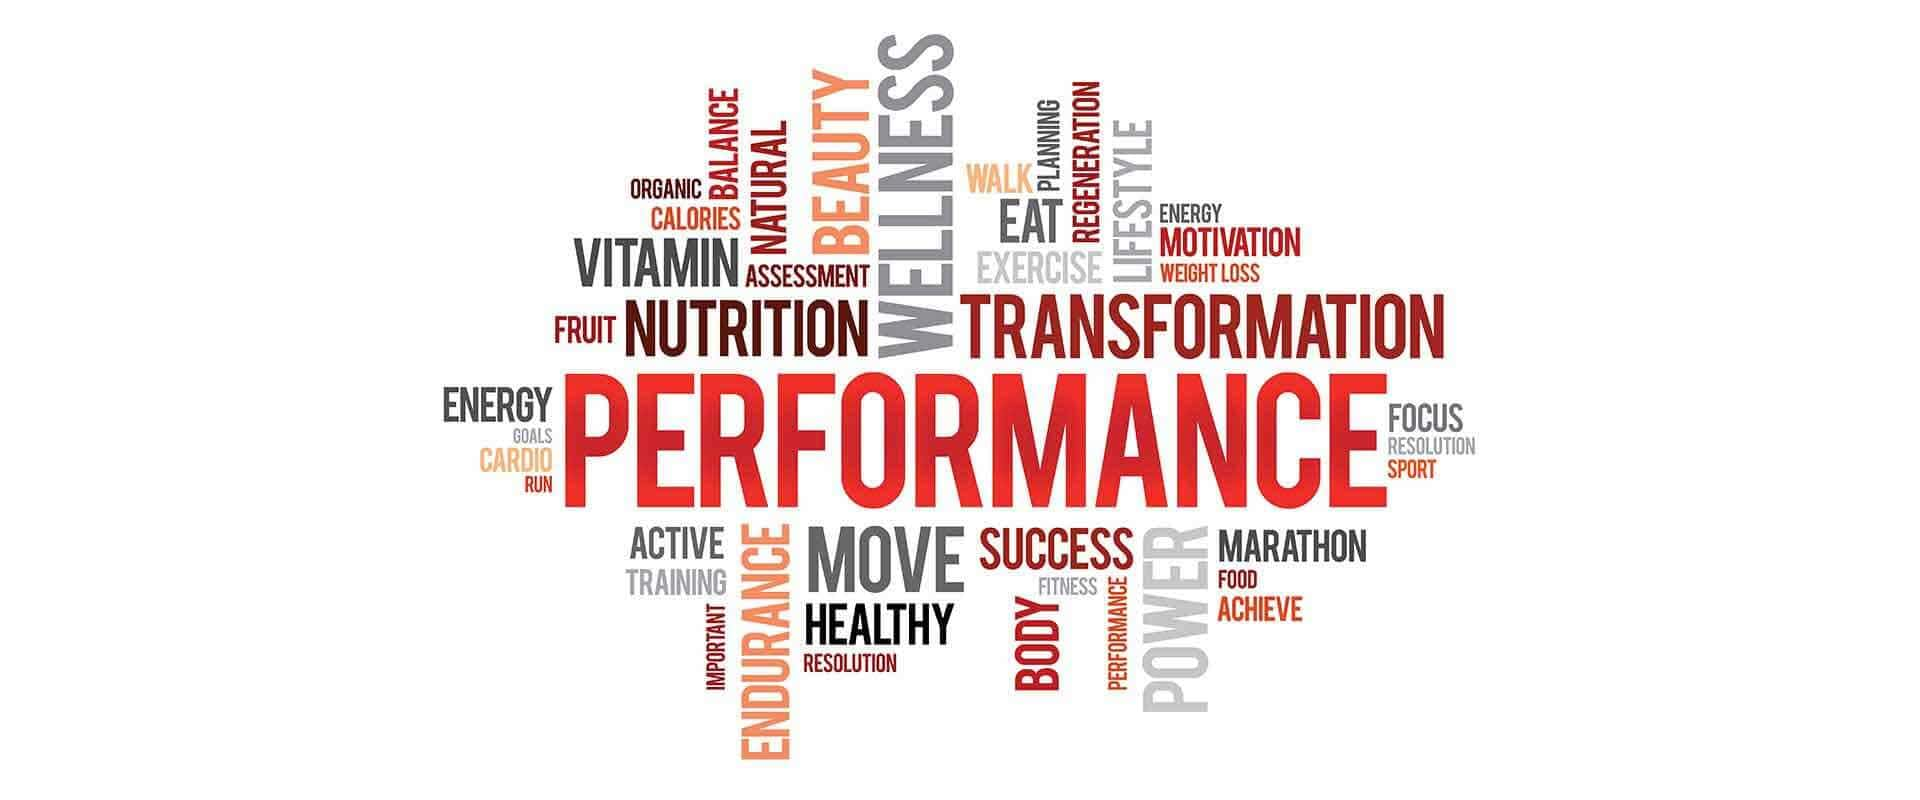 Performance from nutrition